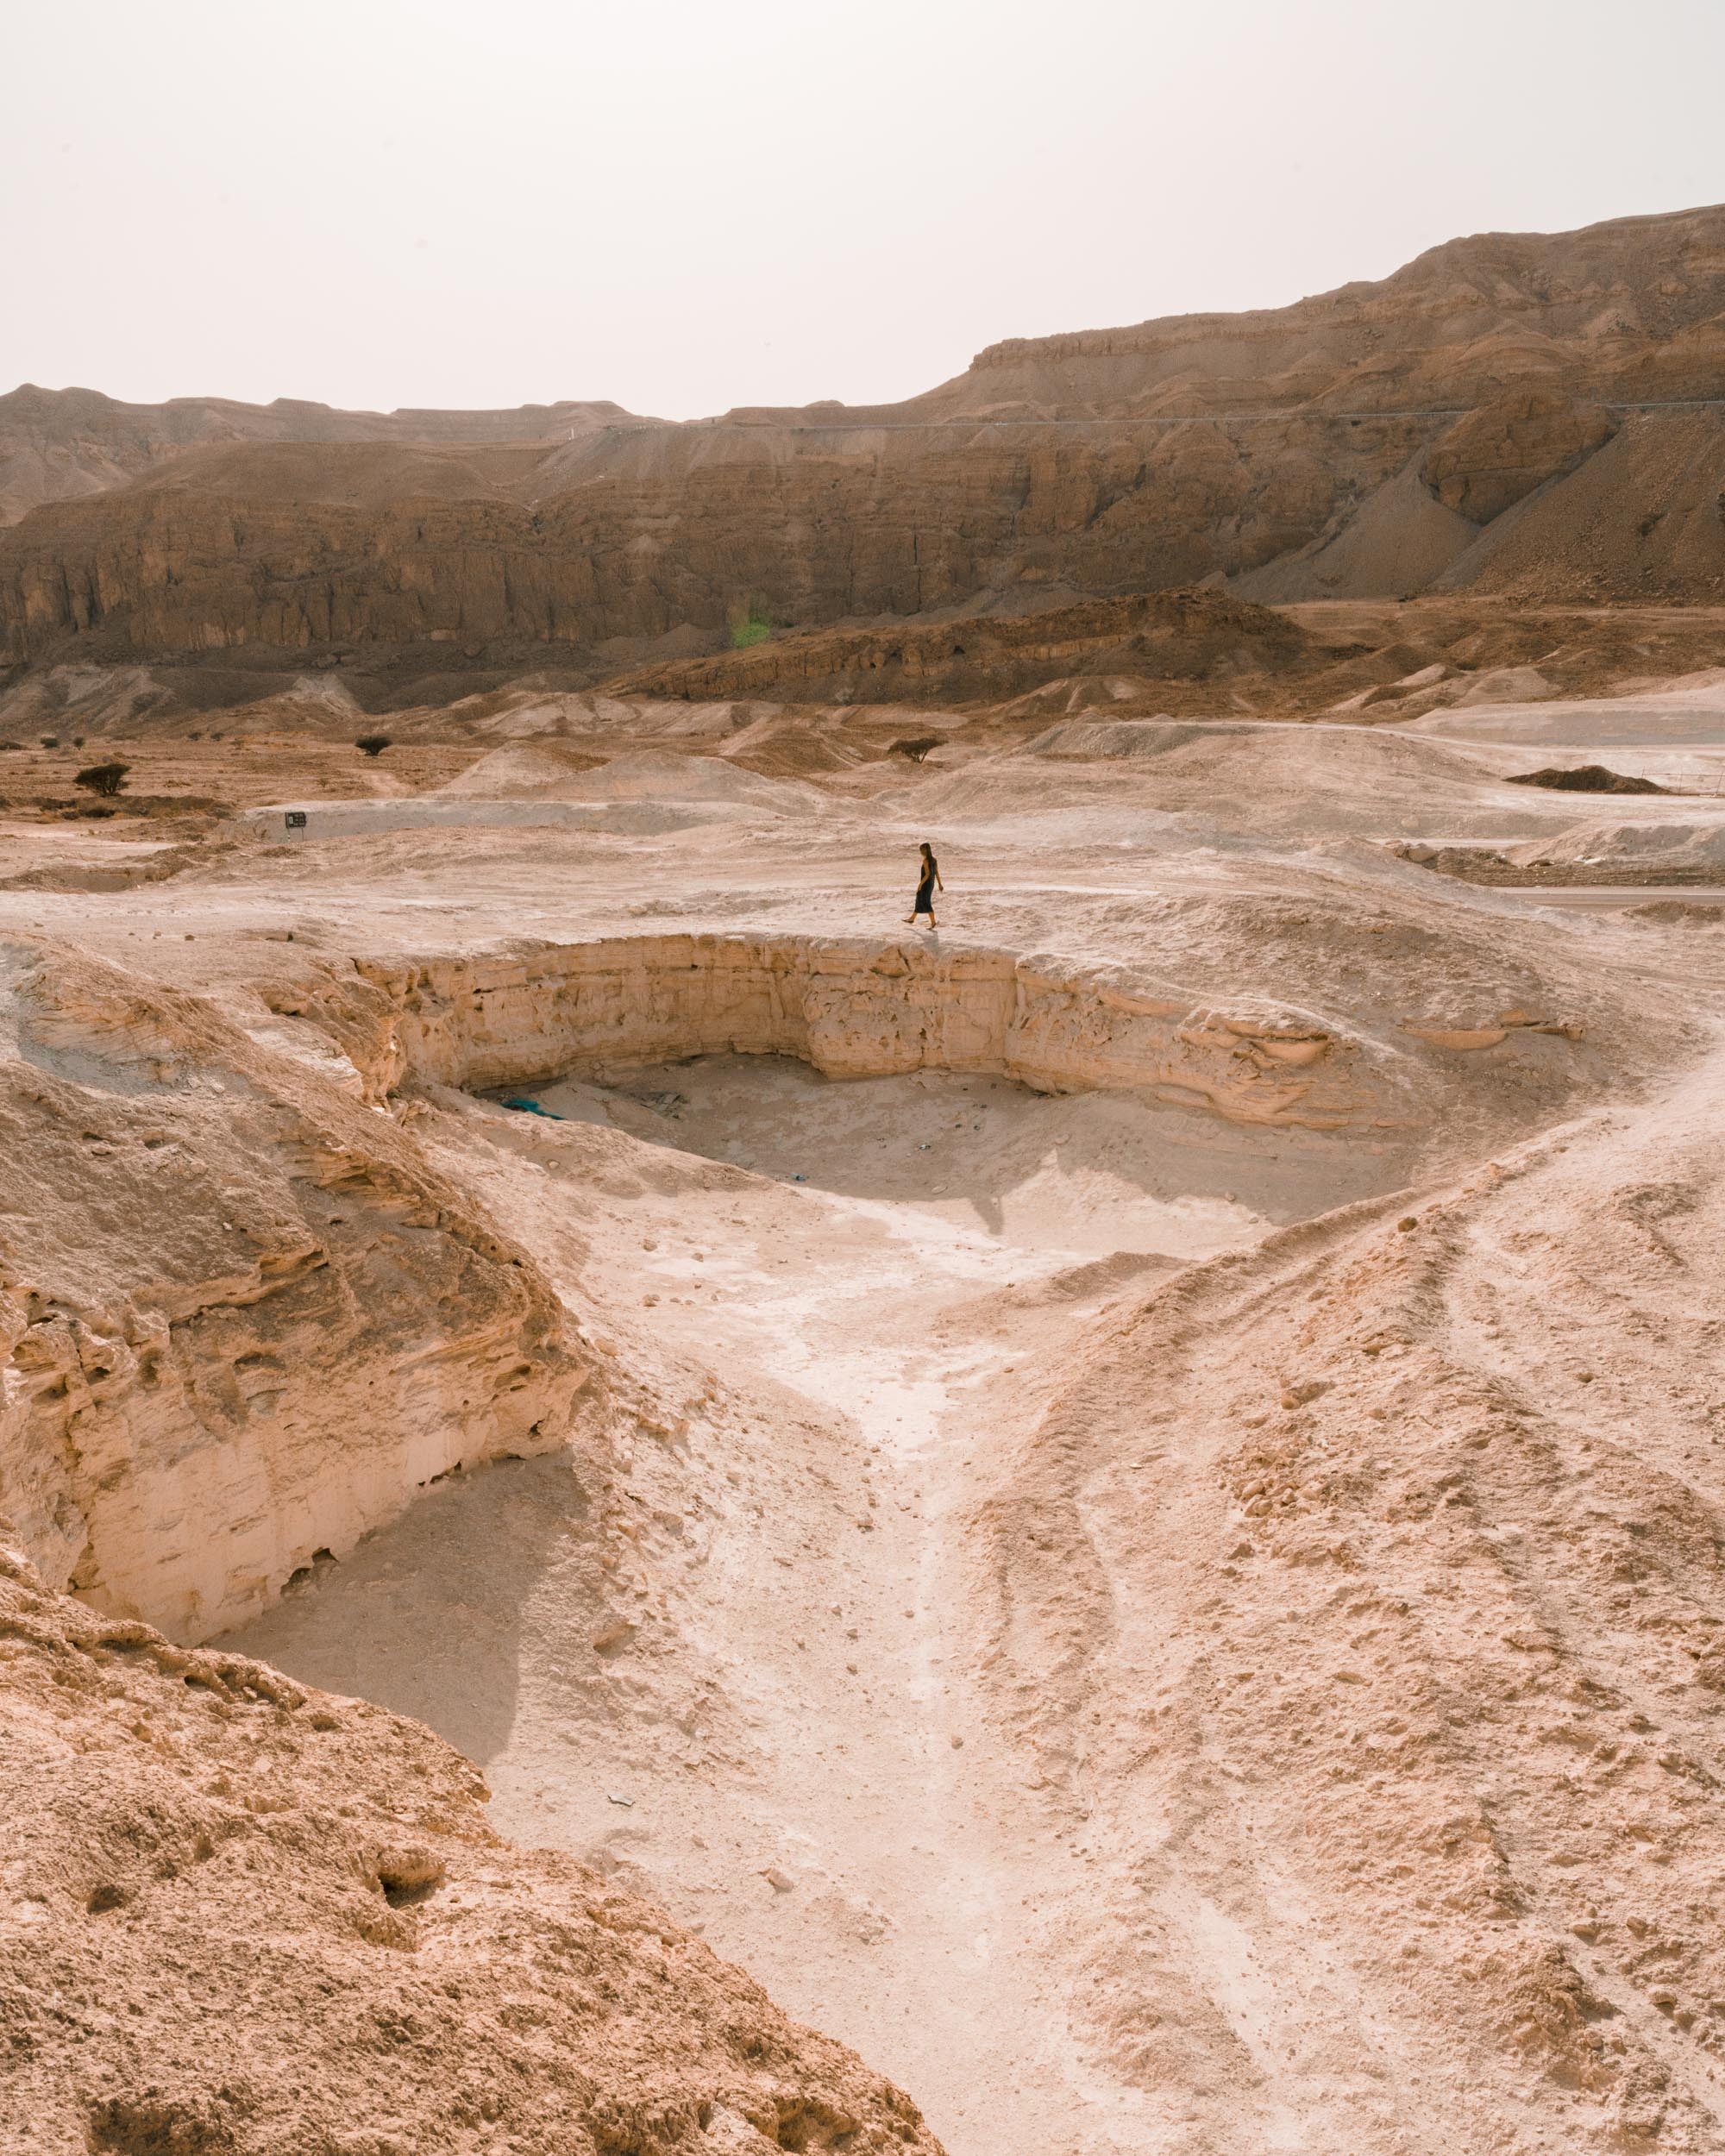 Dead Sea landscapes in the Negev Desert in Israel